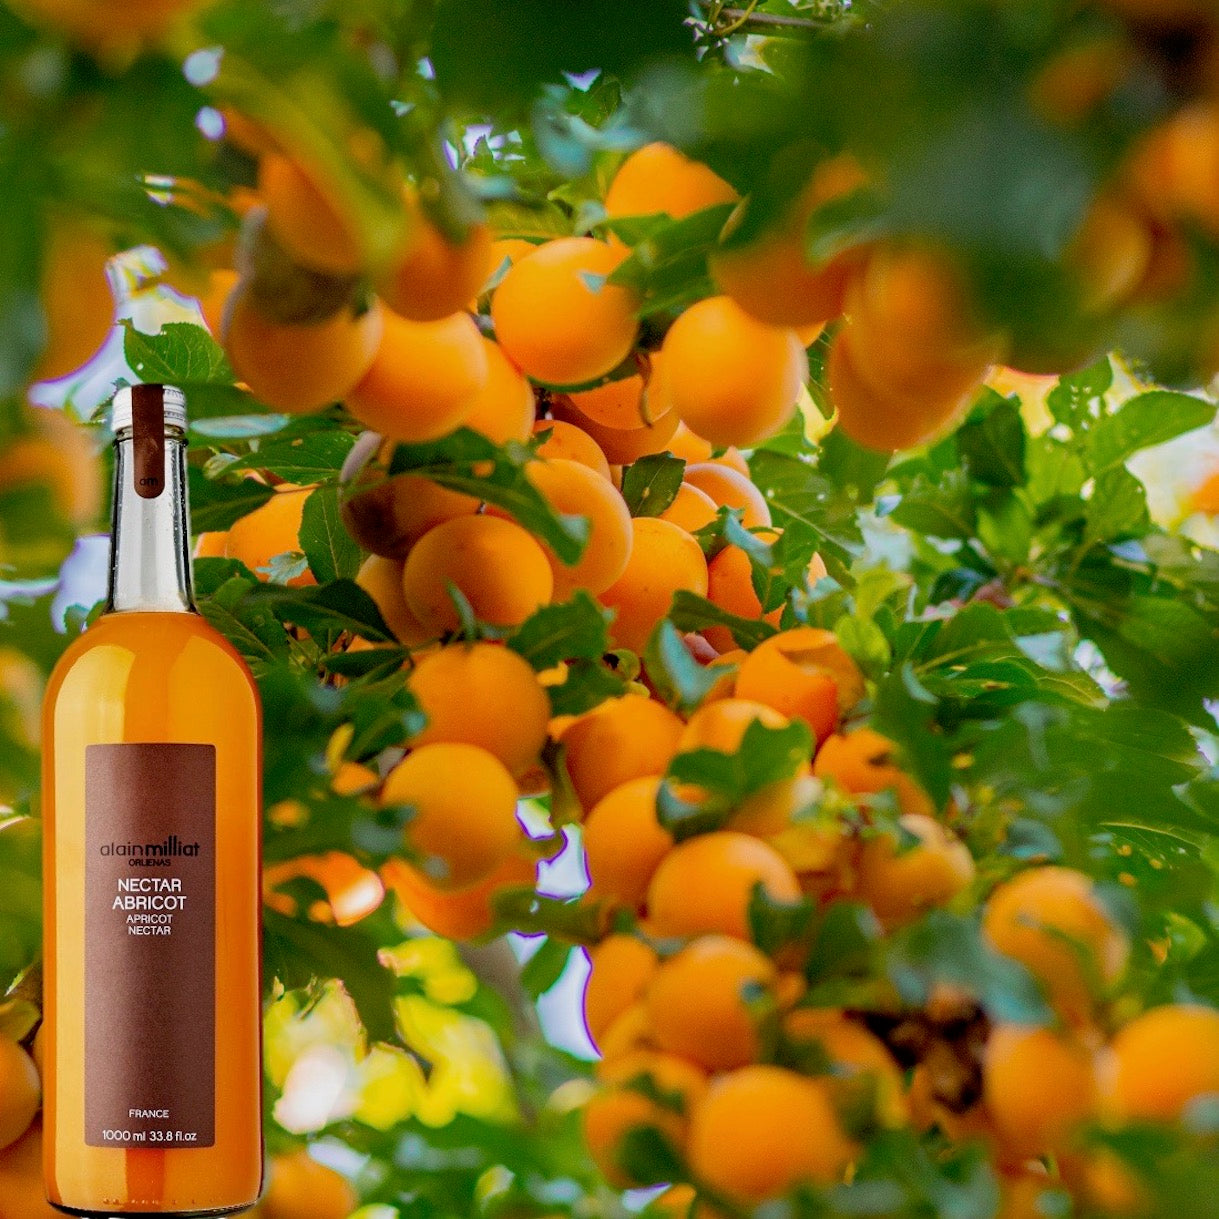 Apricot-nectar-alain-milliat-online-grocery-delivery-singapore-thenewgrocer